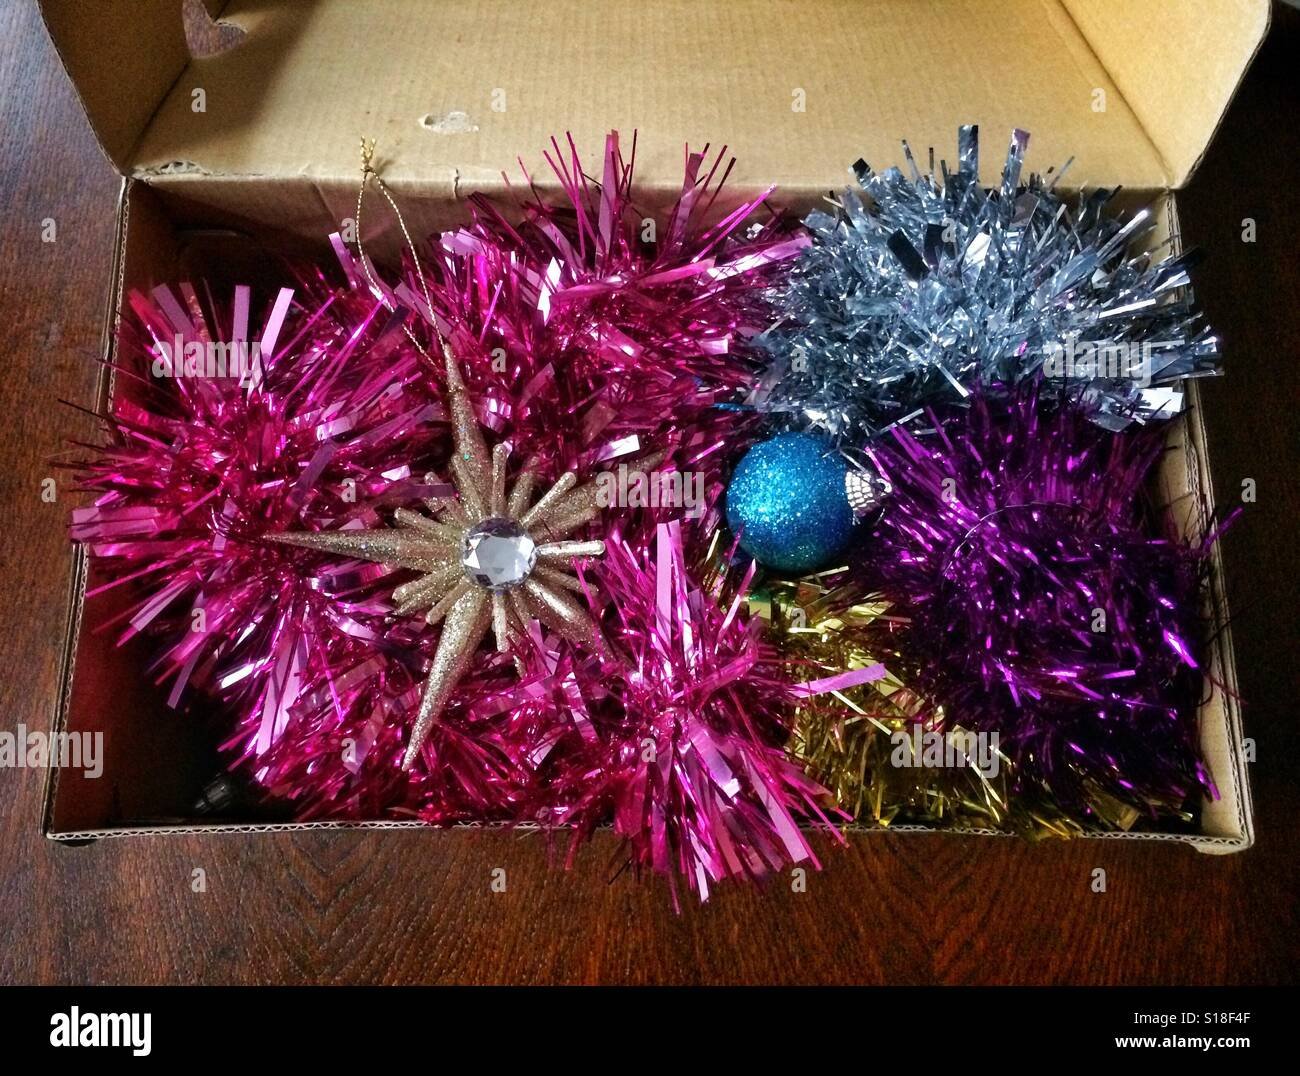 Christmas Tree Decorations In A Box - Christmas tree decorations packed away in a cardboard box ready for next year stock photo